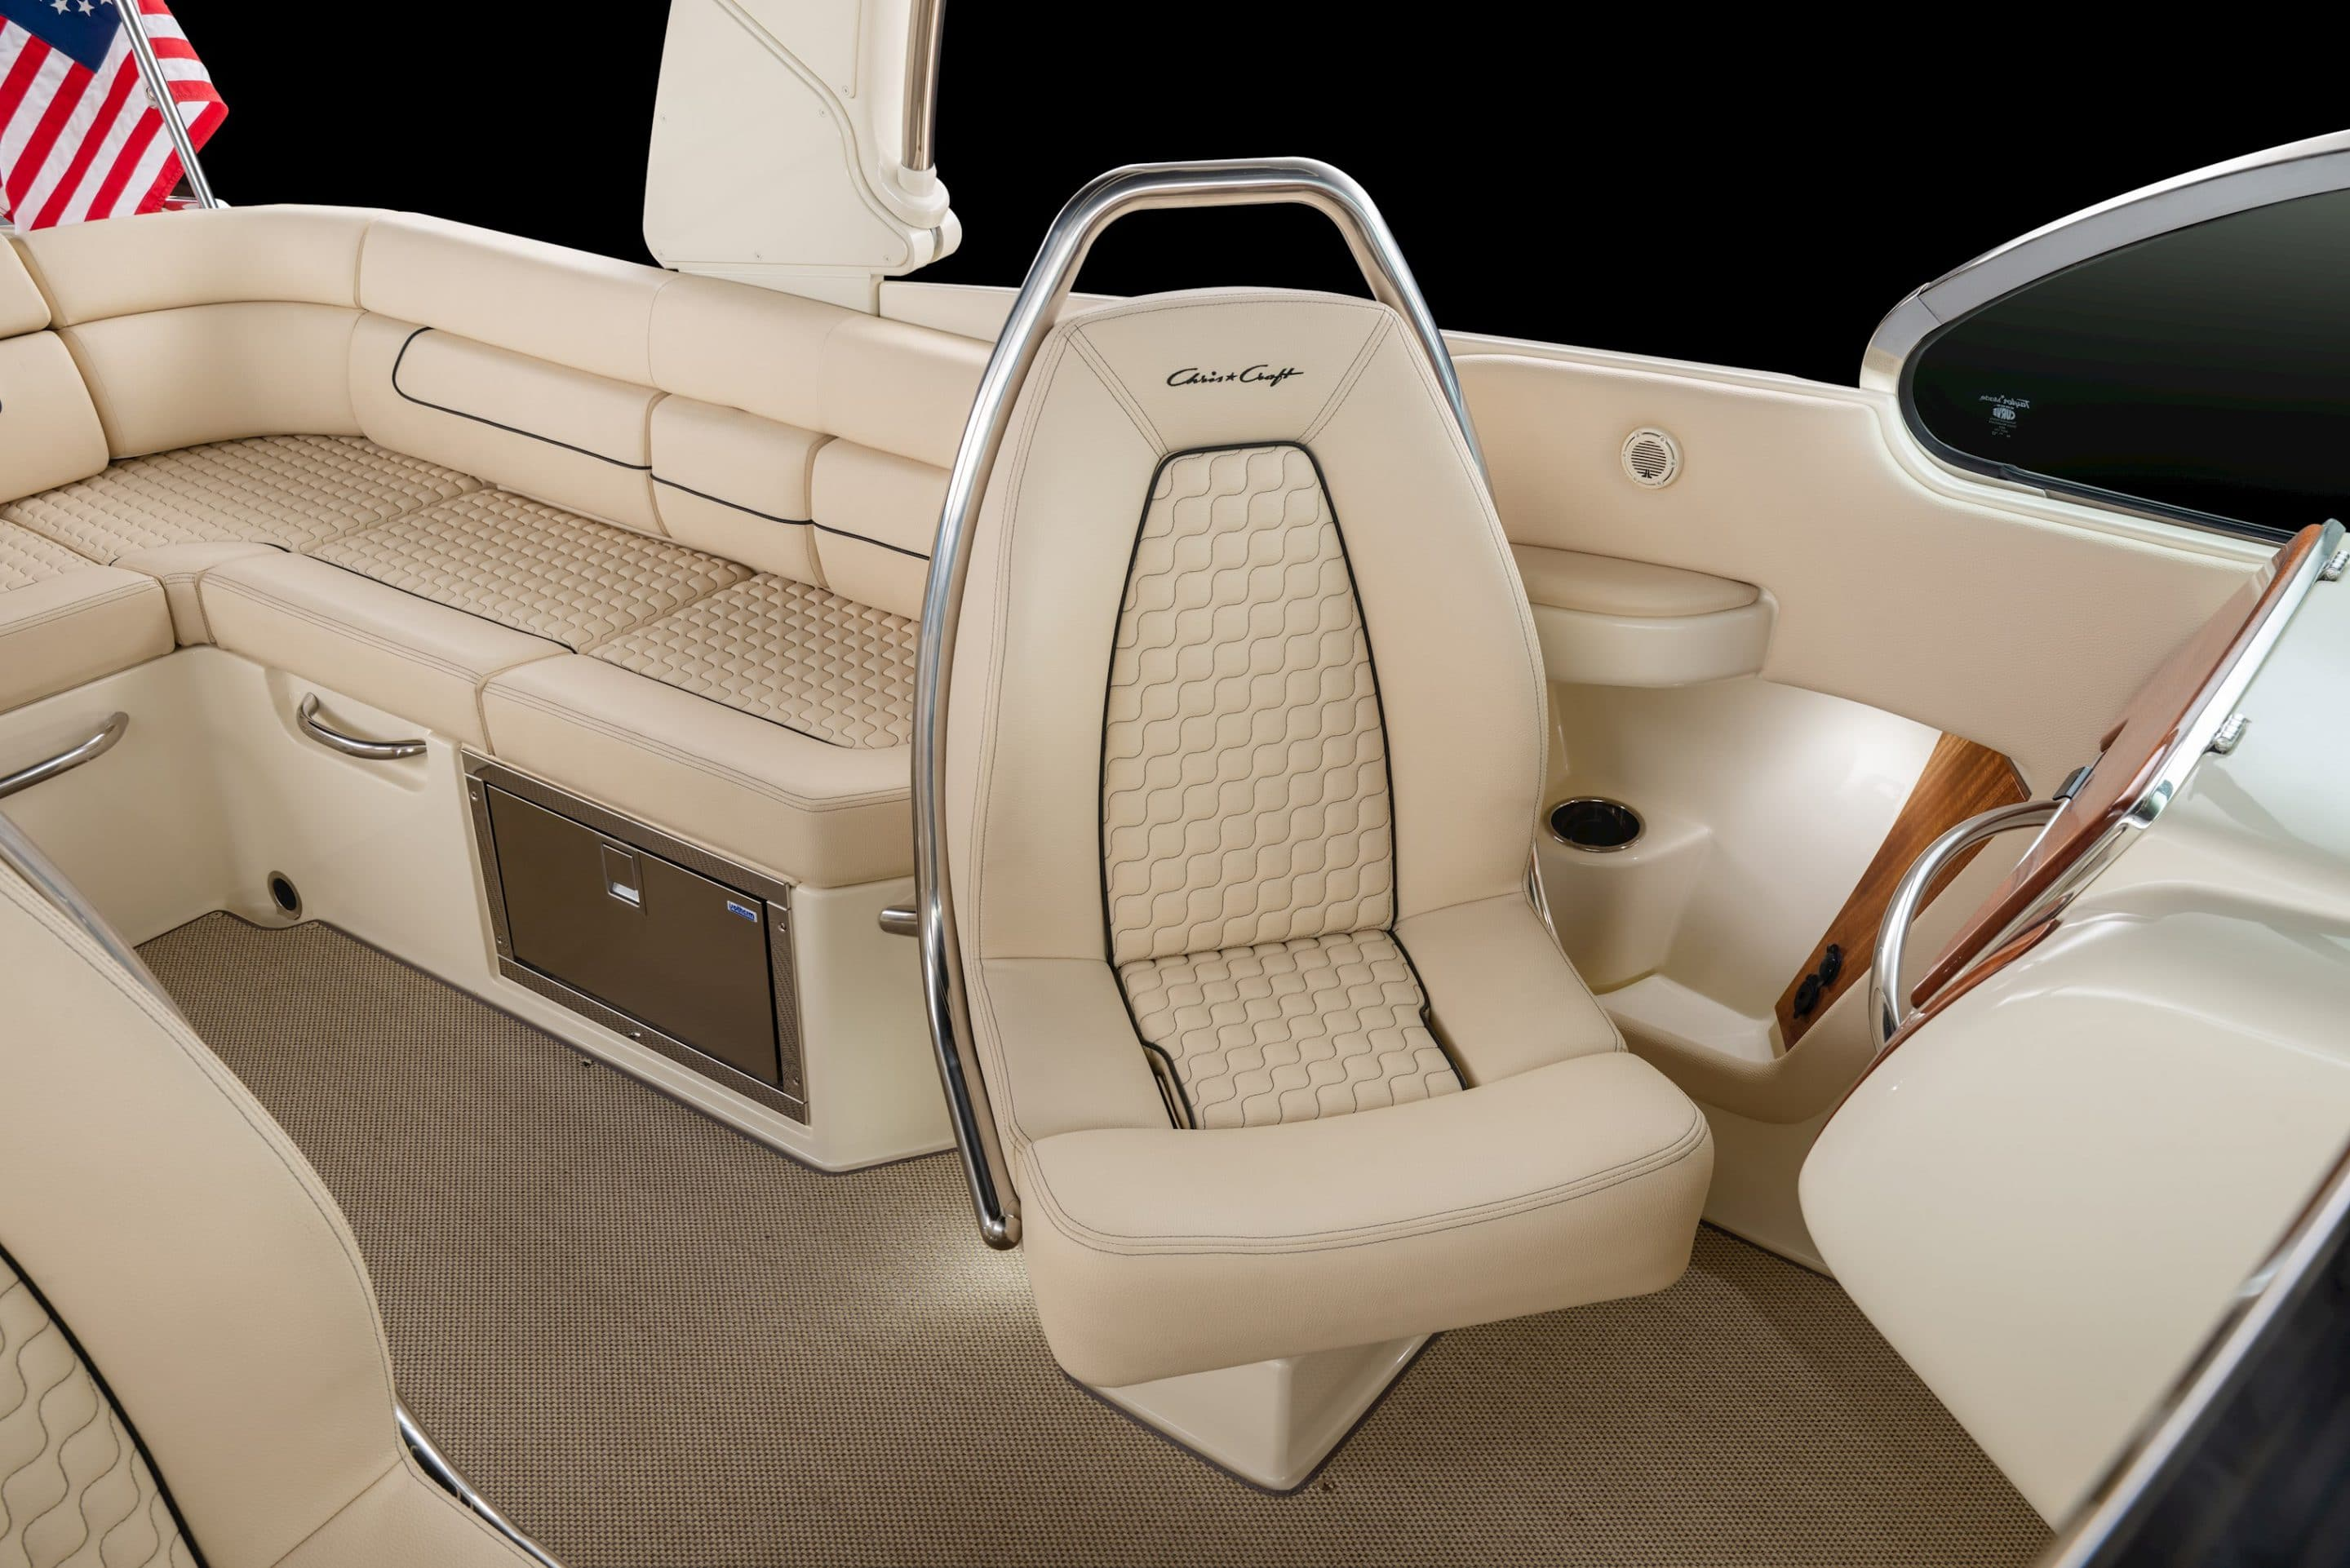 The 2019 Chris Craft Launch 25 GT Seat